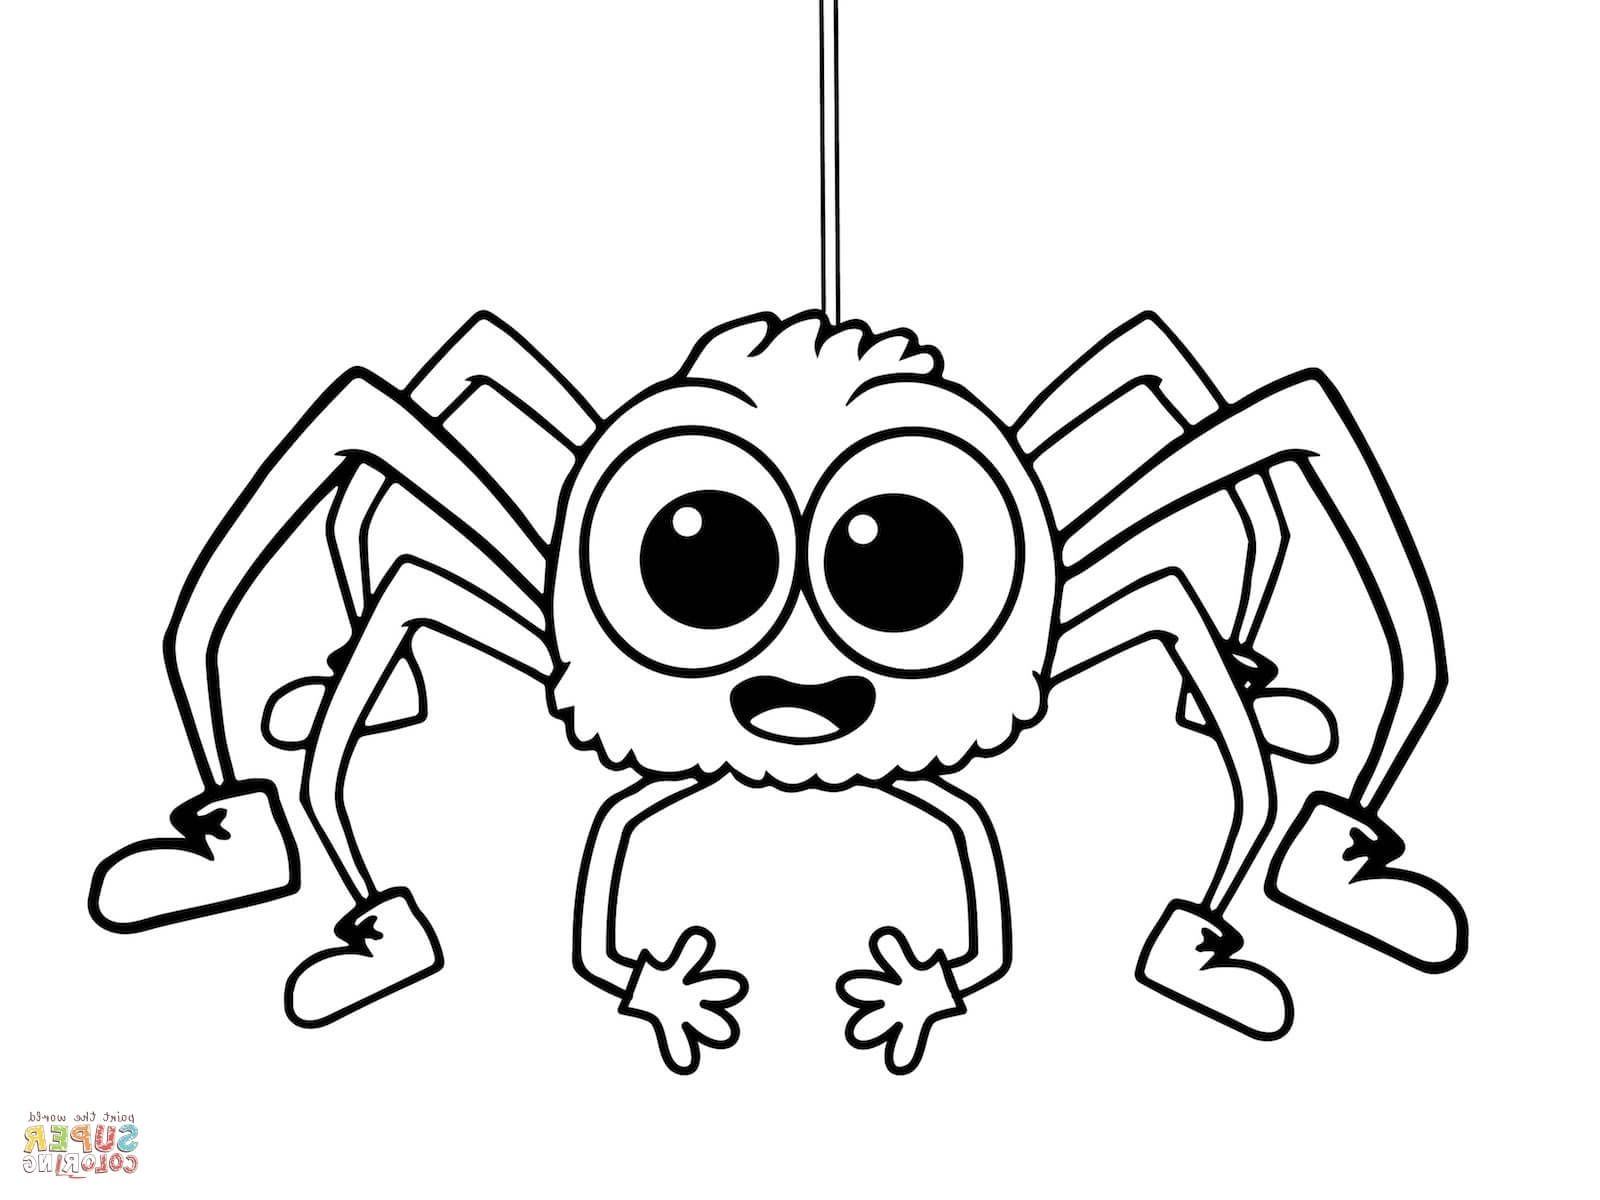 Coloring Download Coloring Pages Spider Page Colori on